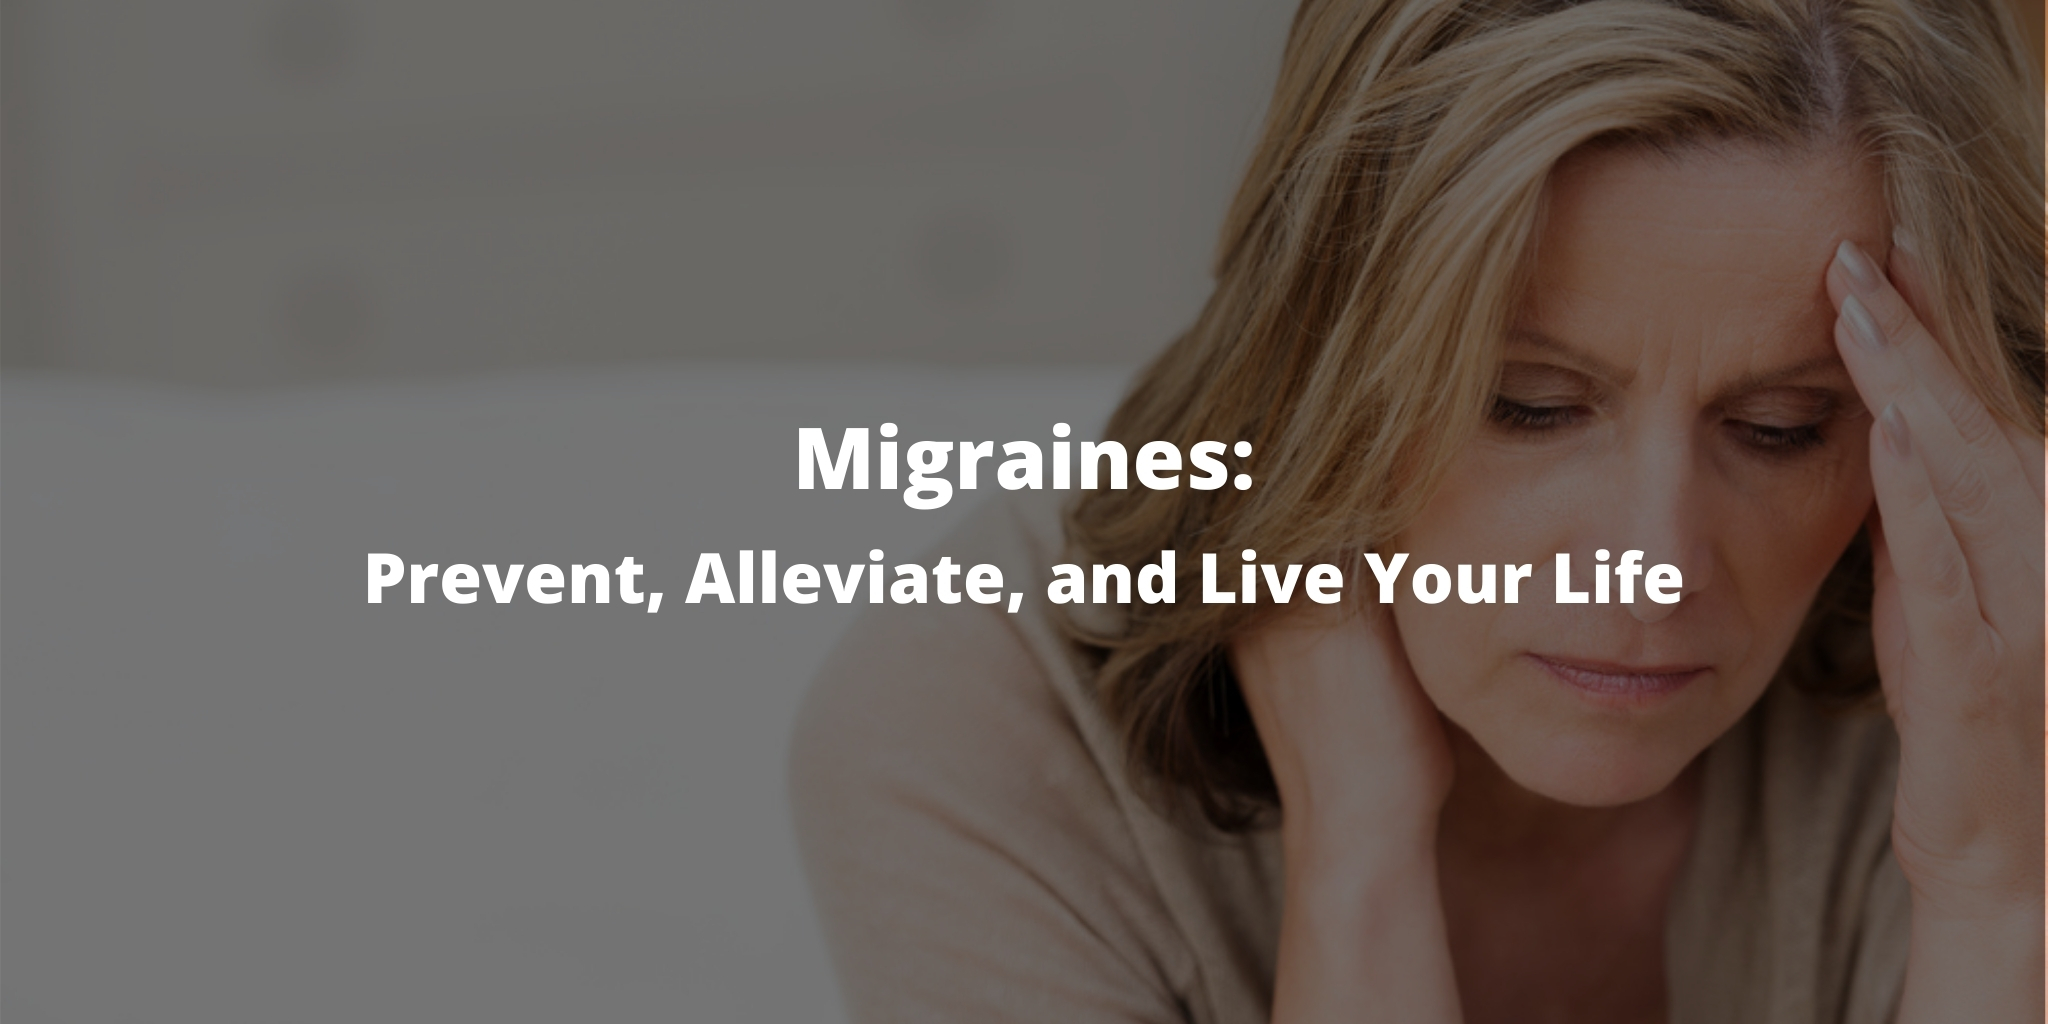 Migraines: Prevent, Alleviate, and Live Your Life